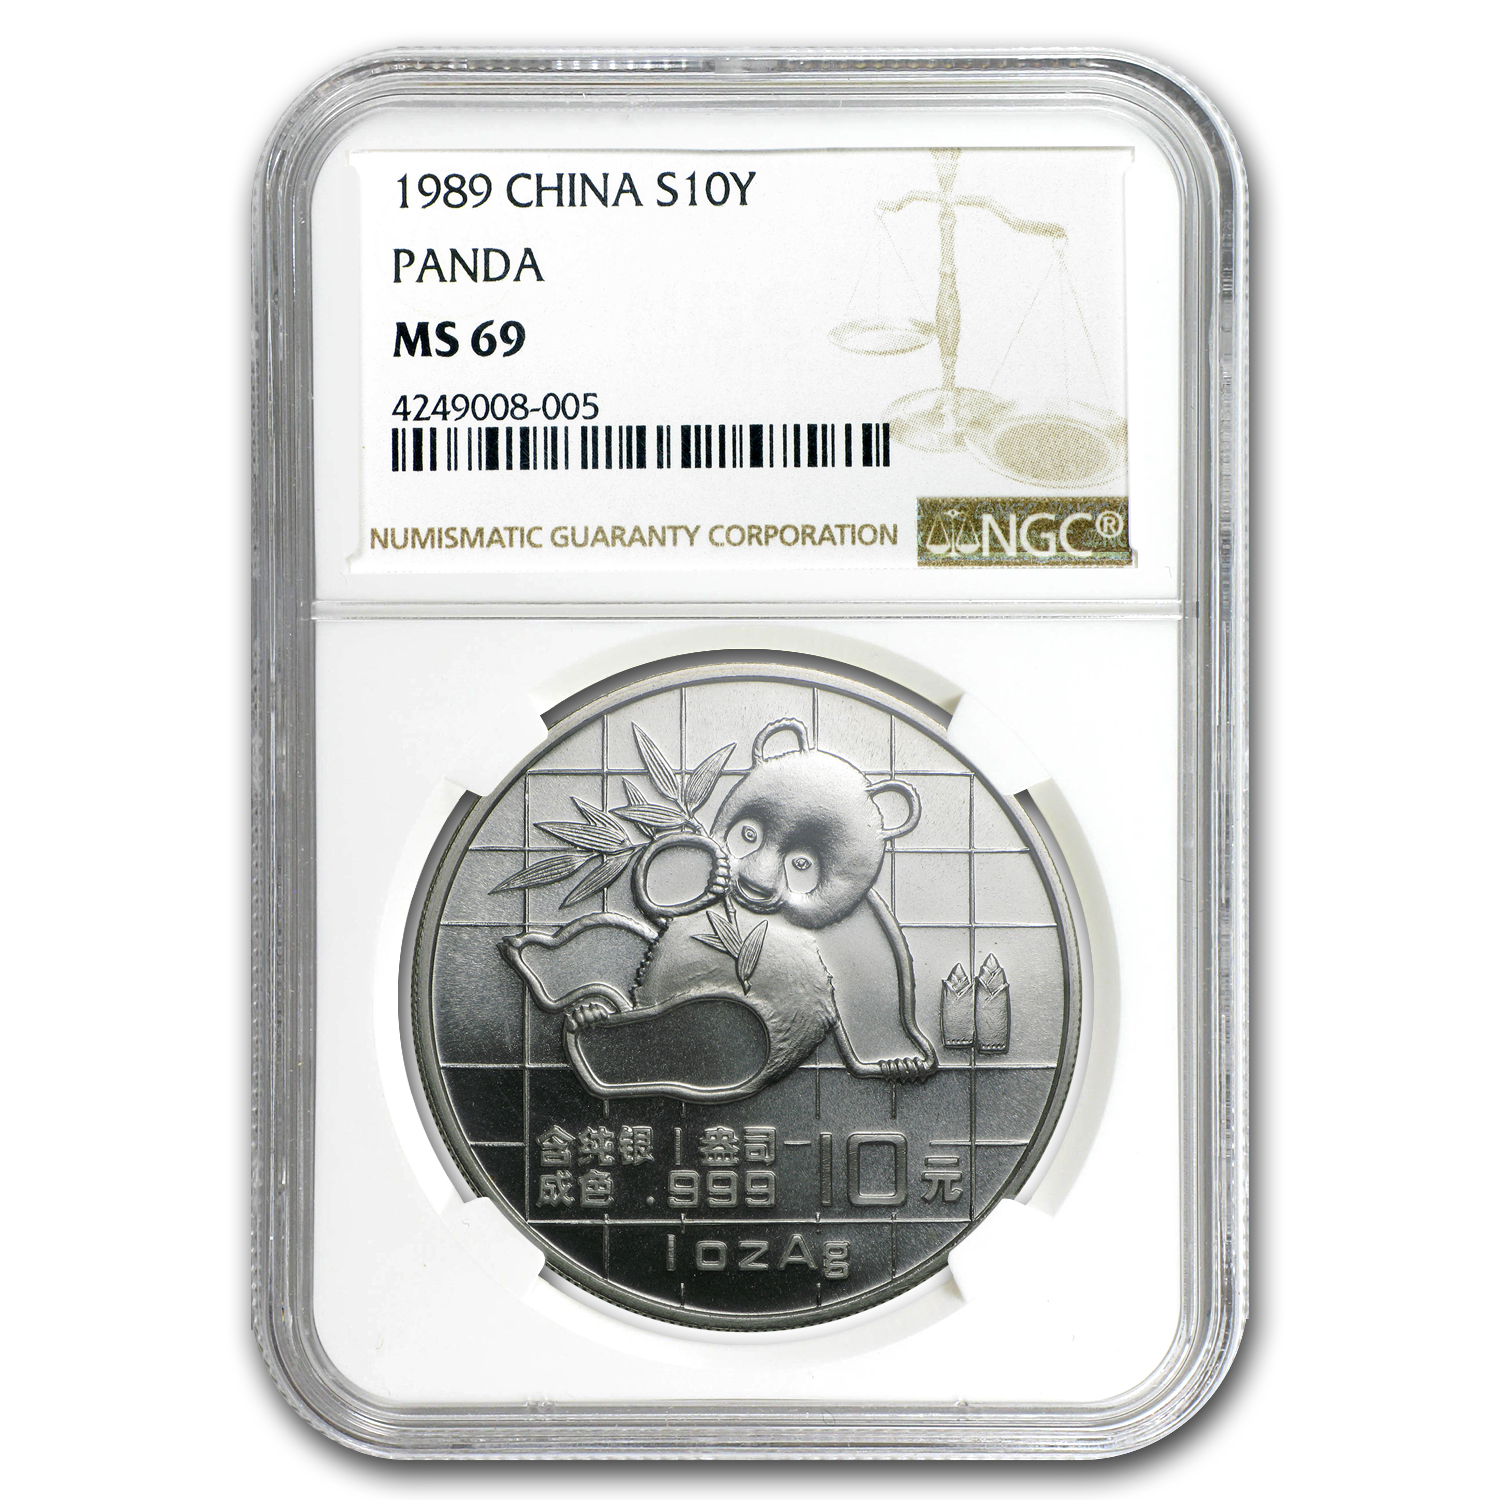 1989 China 1 oz Silver Panda MS-69 NGC